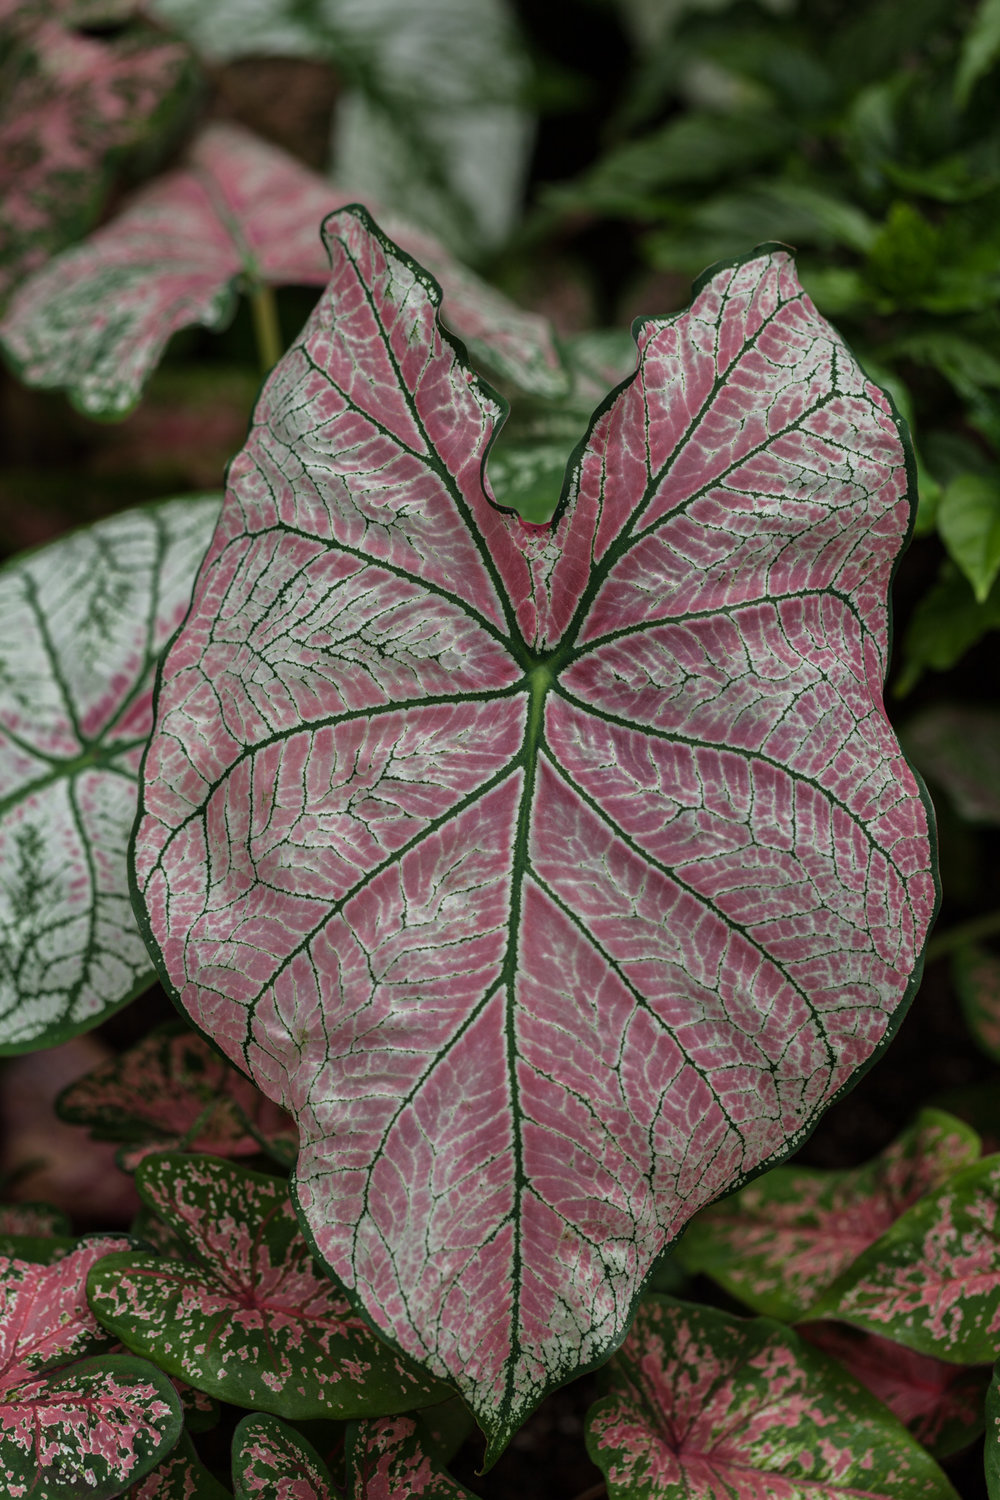 The exquisite coloration of  Caladium